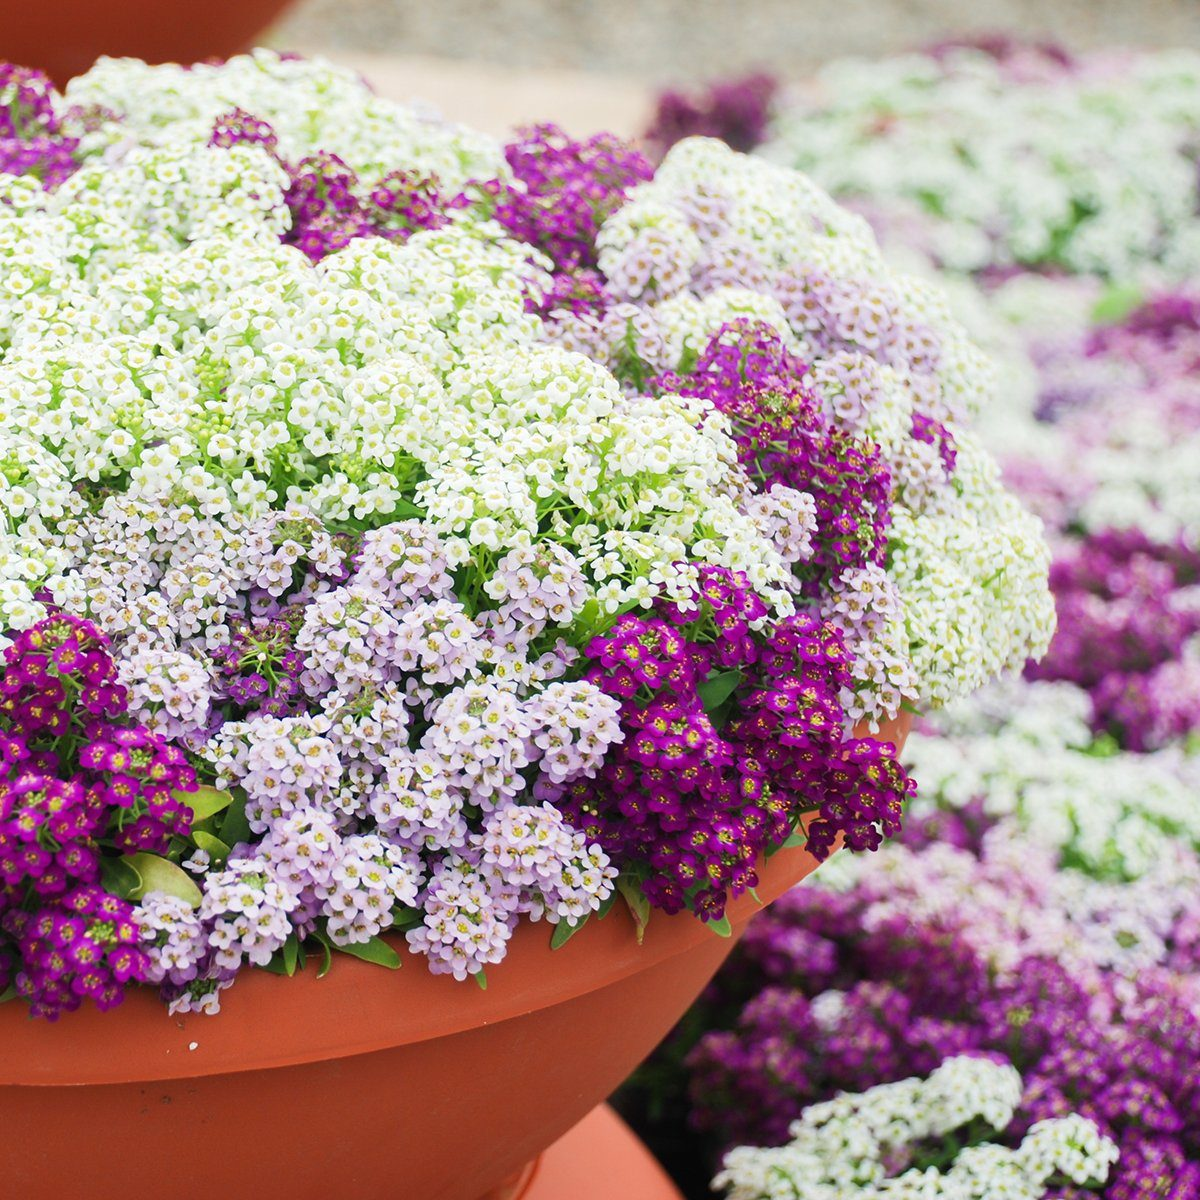 Alyssum flowers. Alyssum in sweet colors. Alyssum in a red brown pot on wood table, in a dense grounding in a greenhouse.